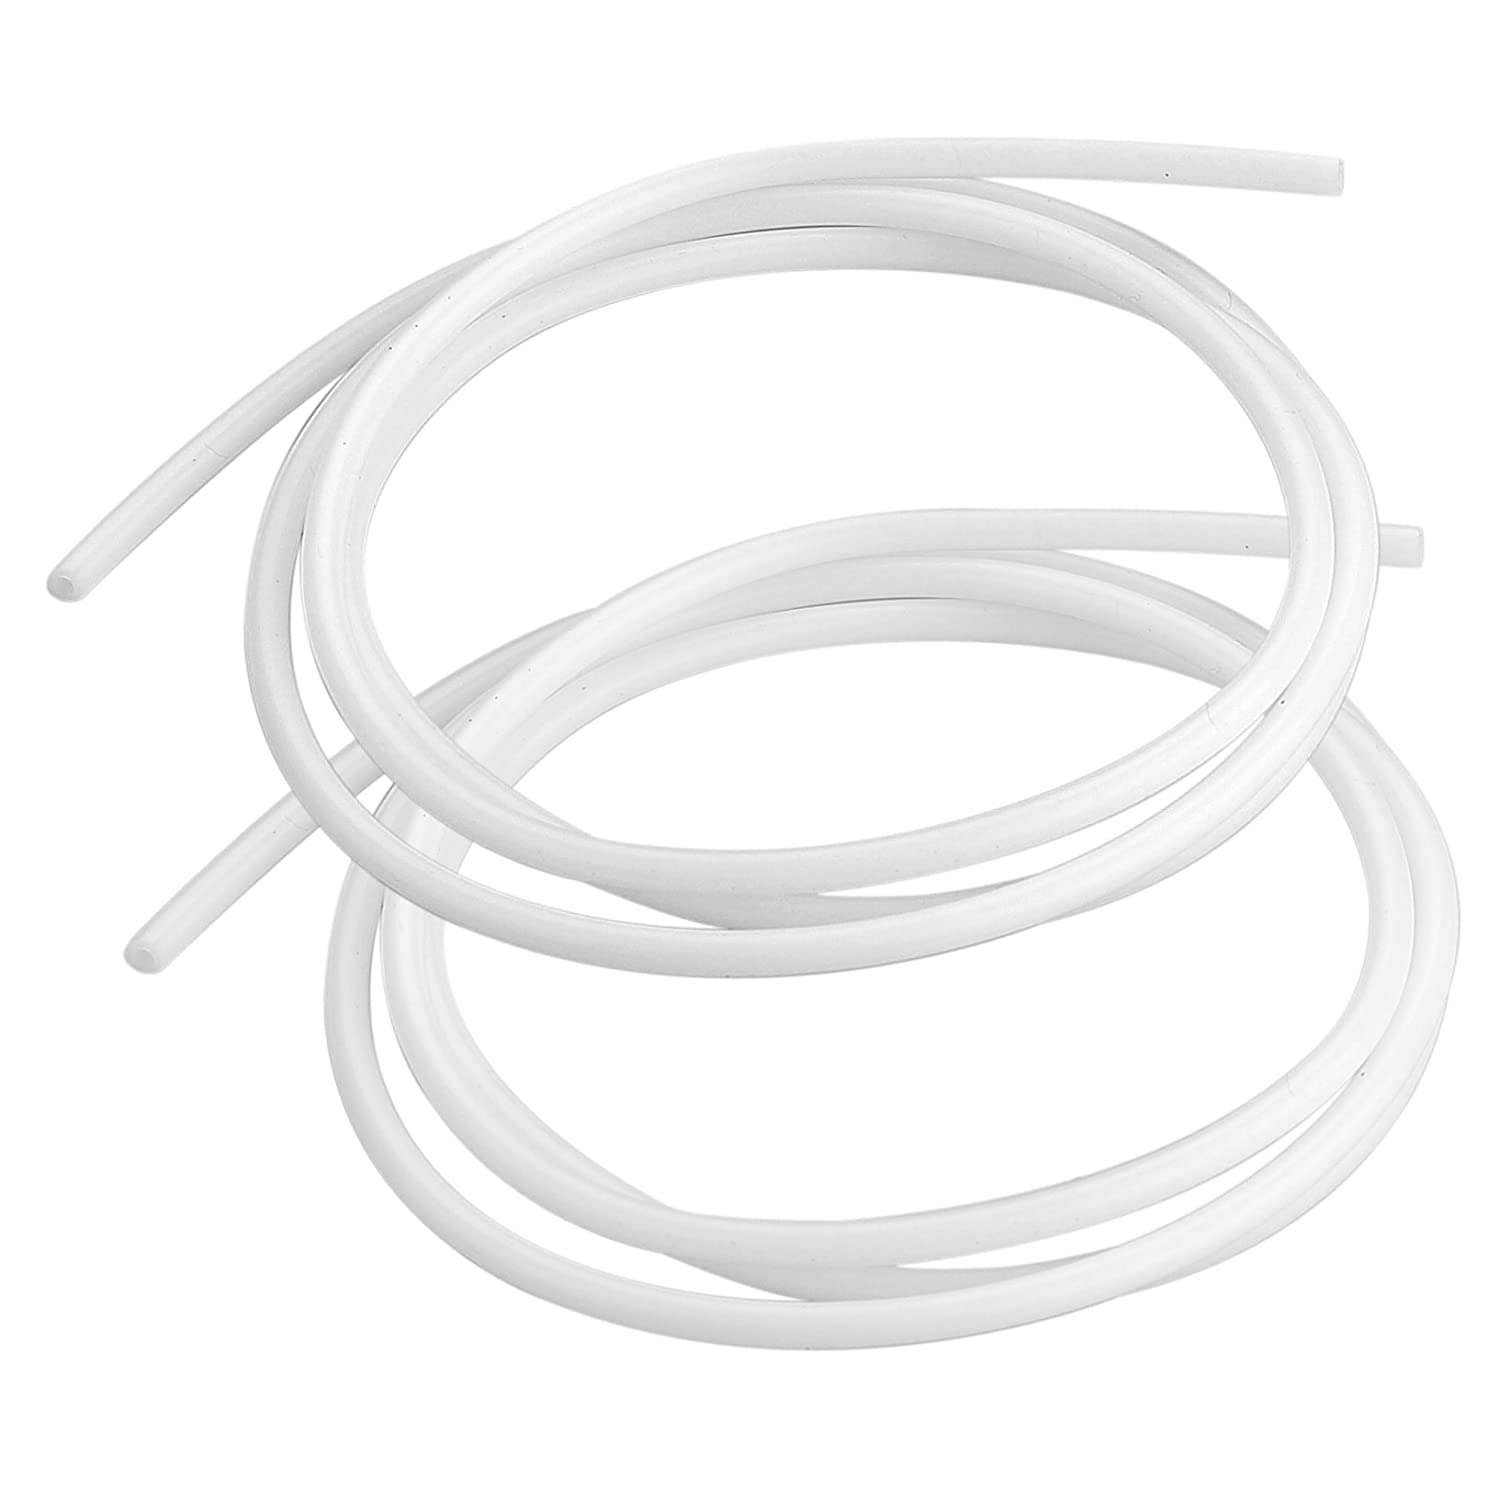 SIENOC 2x 1M PTFE Teflon Tube 2mm ID 4mm OD For 1.75mm Filament 3D Printer